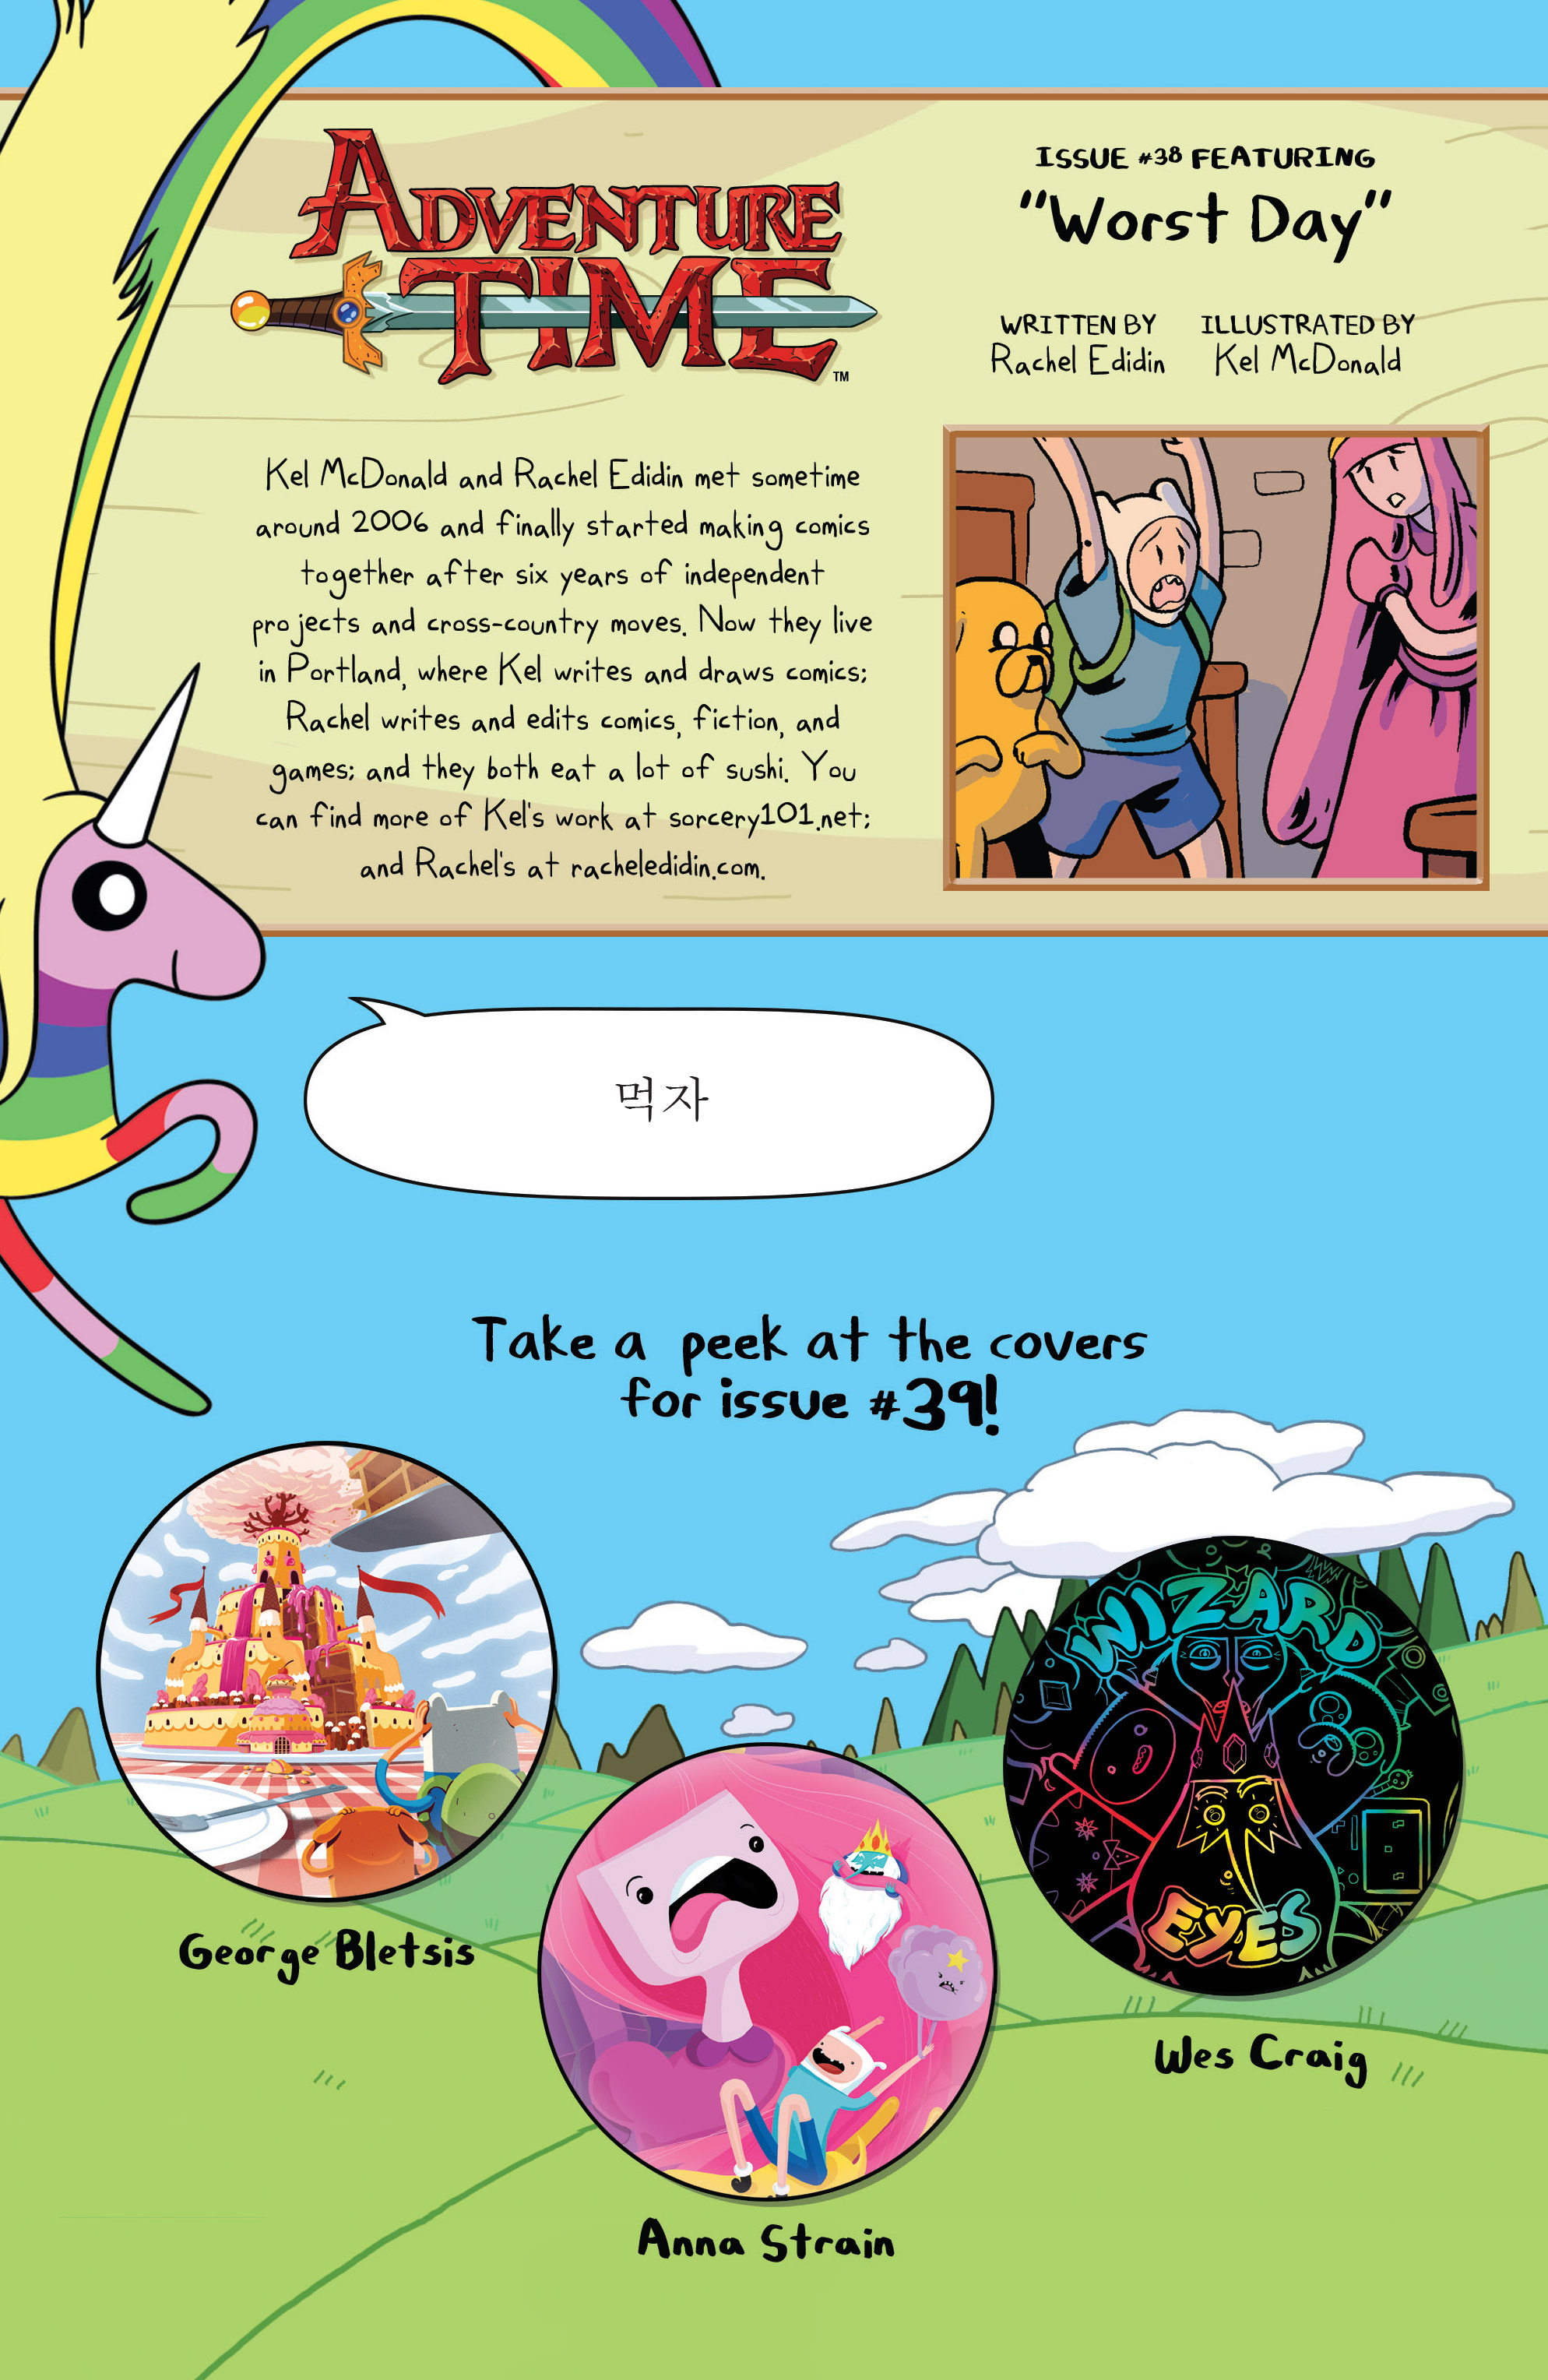 Read online Adventure Time comic -  Issue #38 - 25